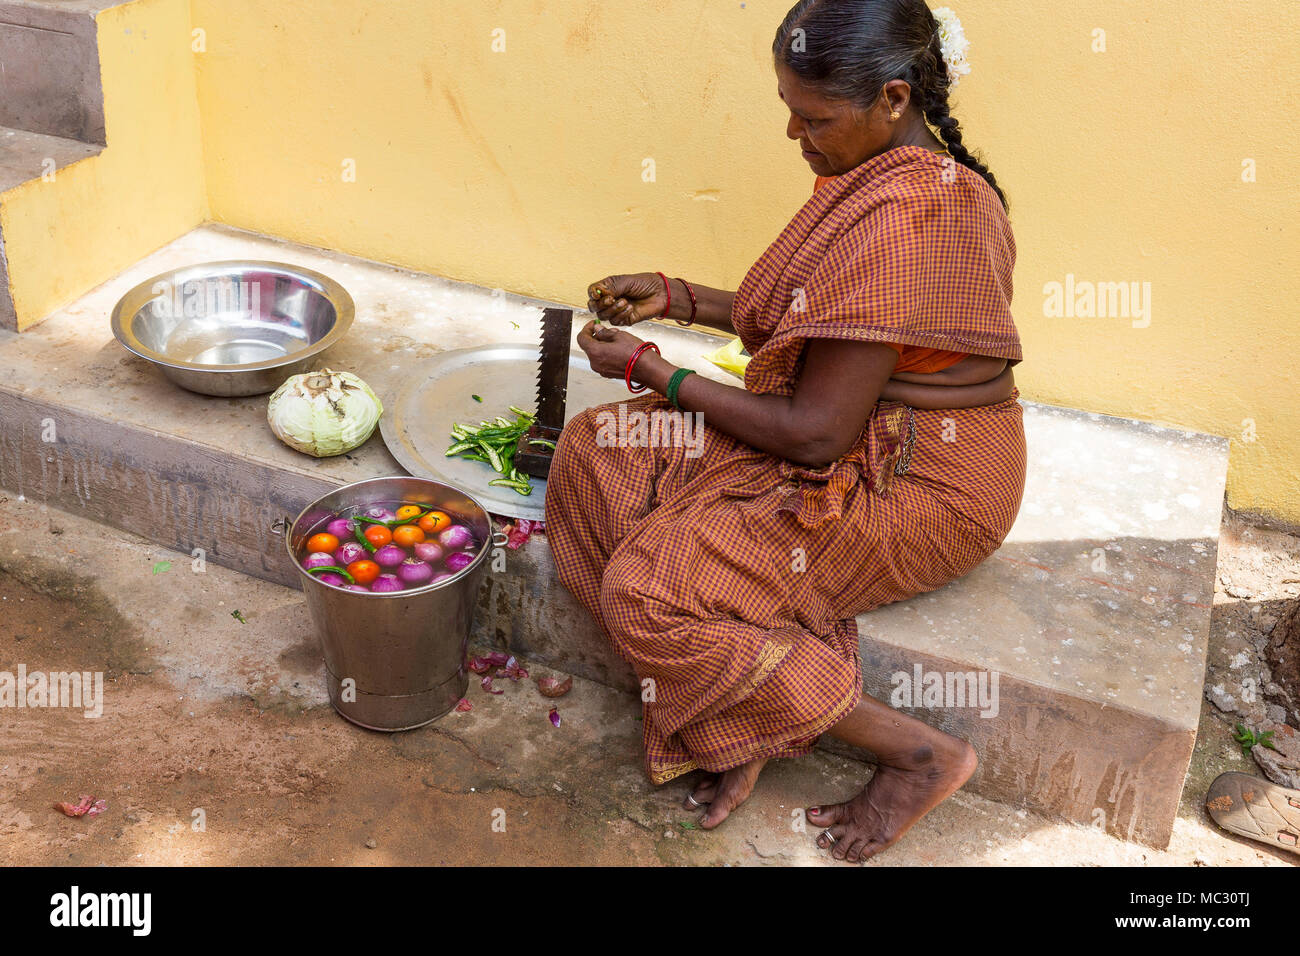 PONDICHERY, PUDUCHERY, INDIA - SEPTEMBER 04, 2017. An unidentified Indian woman cooker in the street, cutting vegetables for lunch. Stock Photo